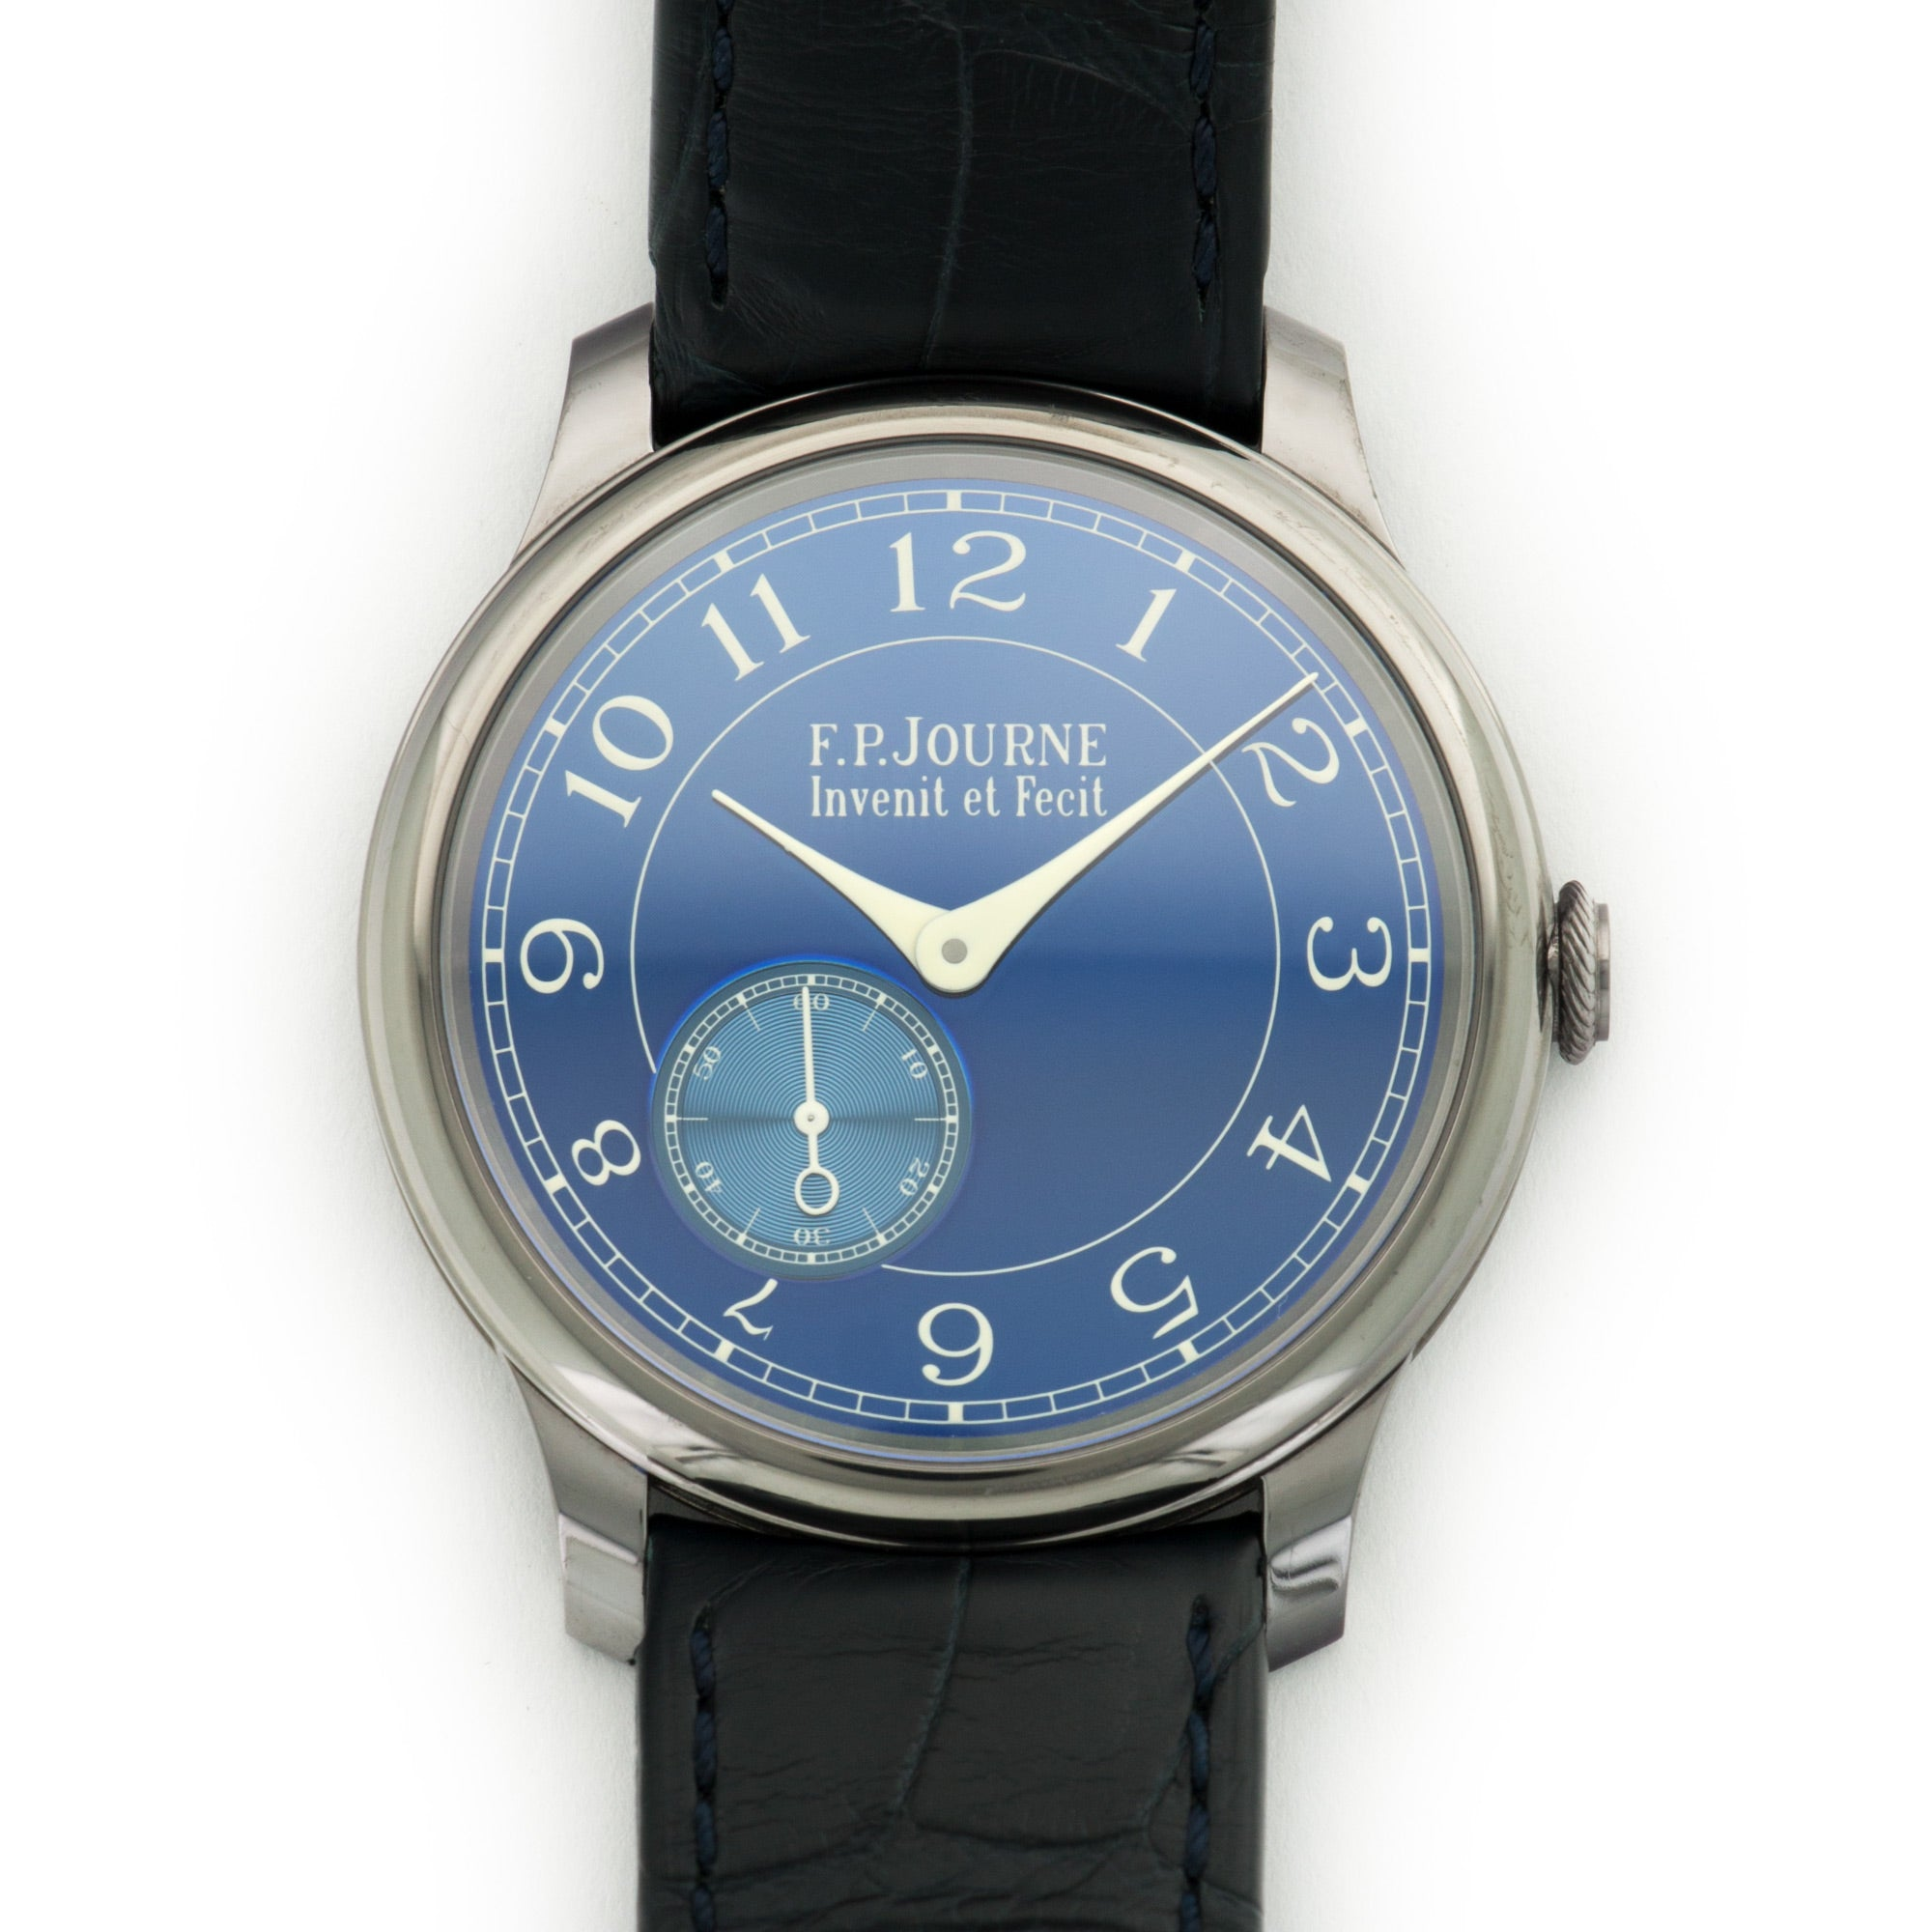 FP Journe Chronometre N/A Tantalum  Likely Never Polished, Original Finish Gents Tantalum Blue 40mm Manual 2016 Dark Blue Crocodile Box, Manuals, Warranty Card